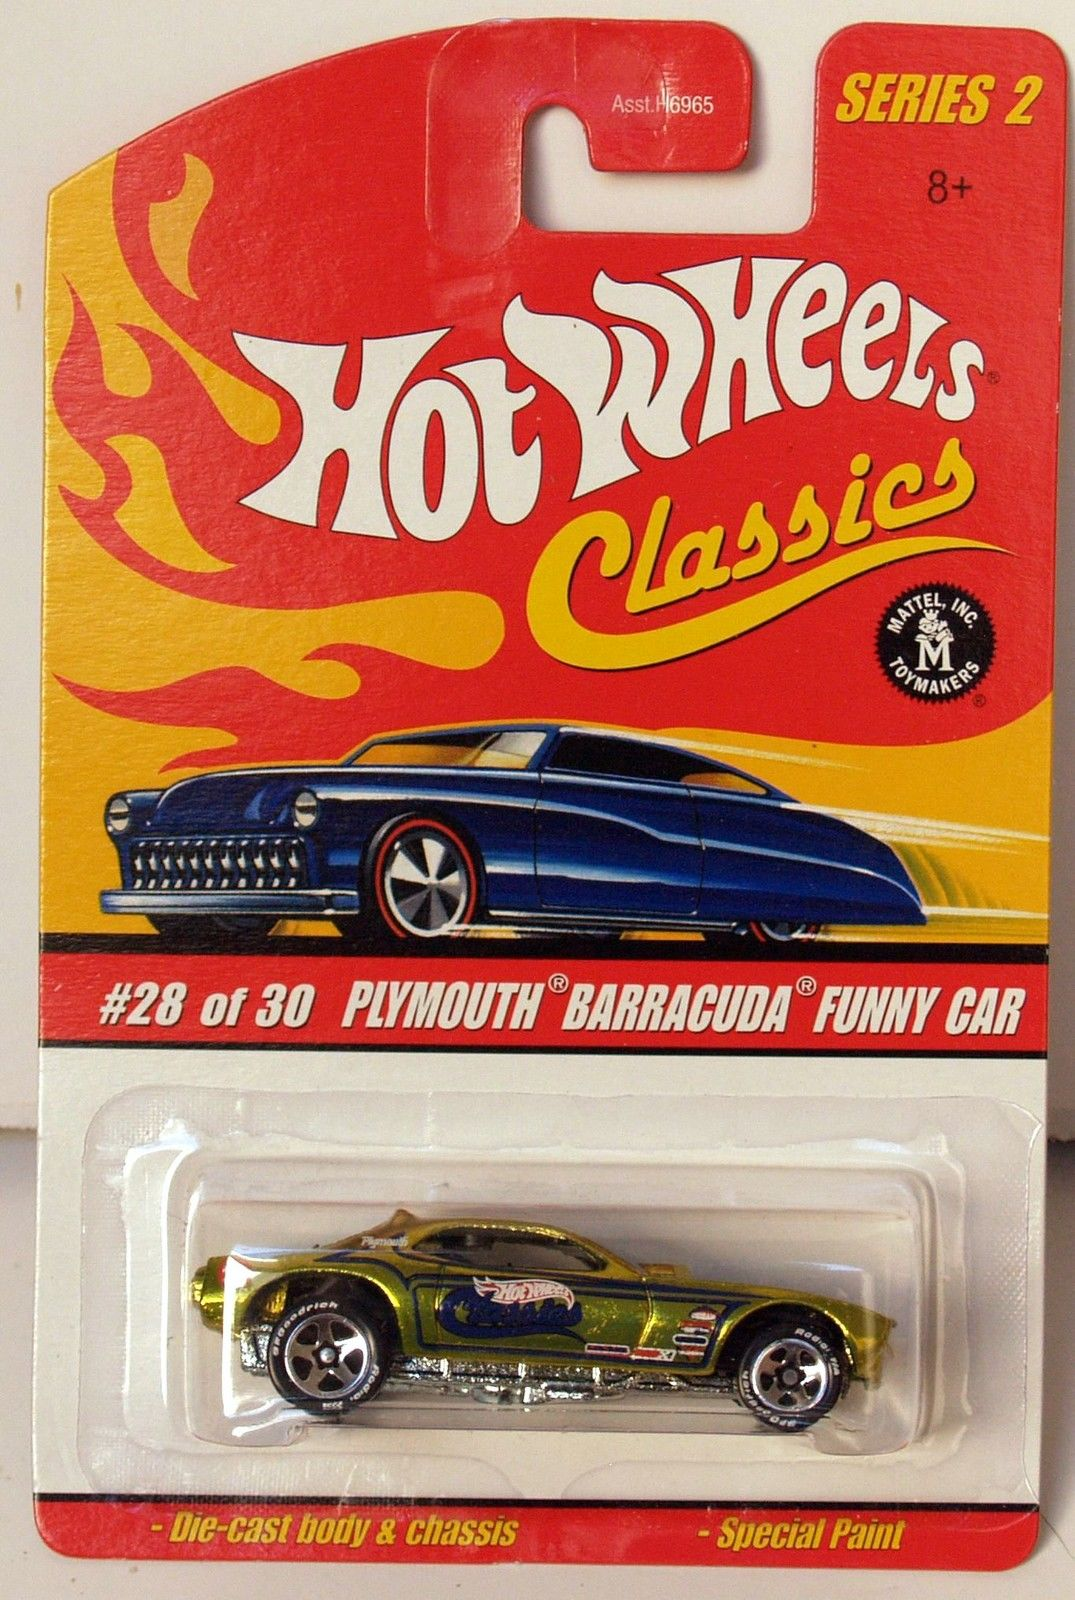 HOT WHEELS CLASSICS SERIES 2 PLYMOUTH BARRACUDA FUNNY CAR